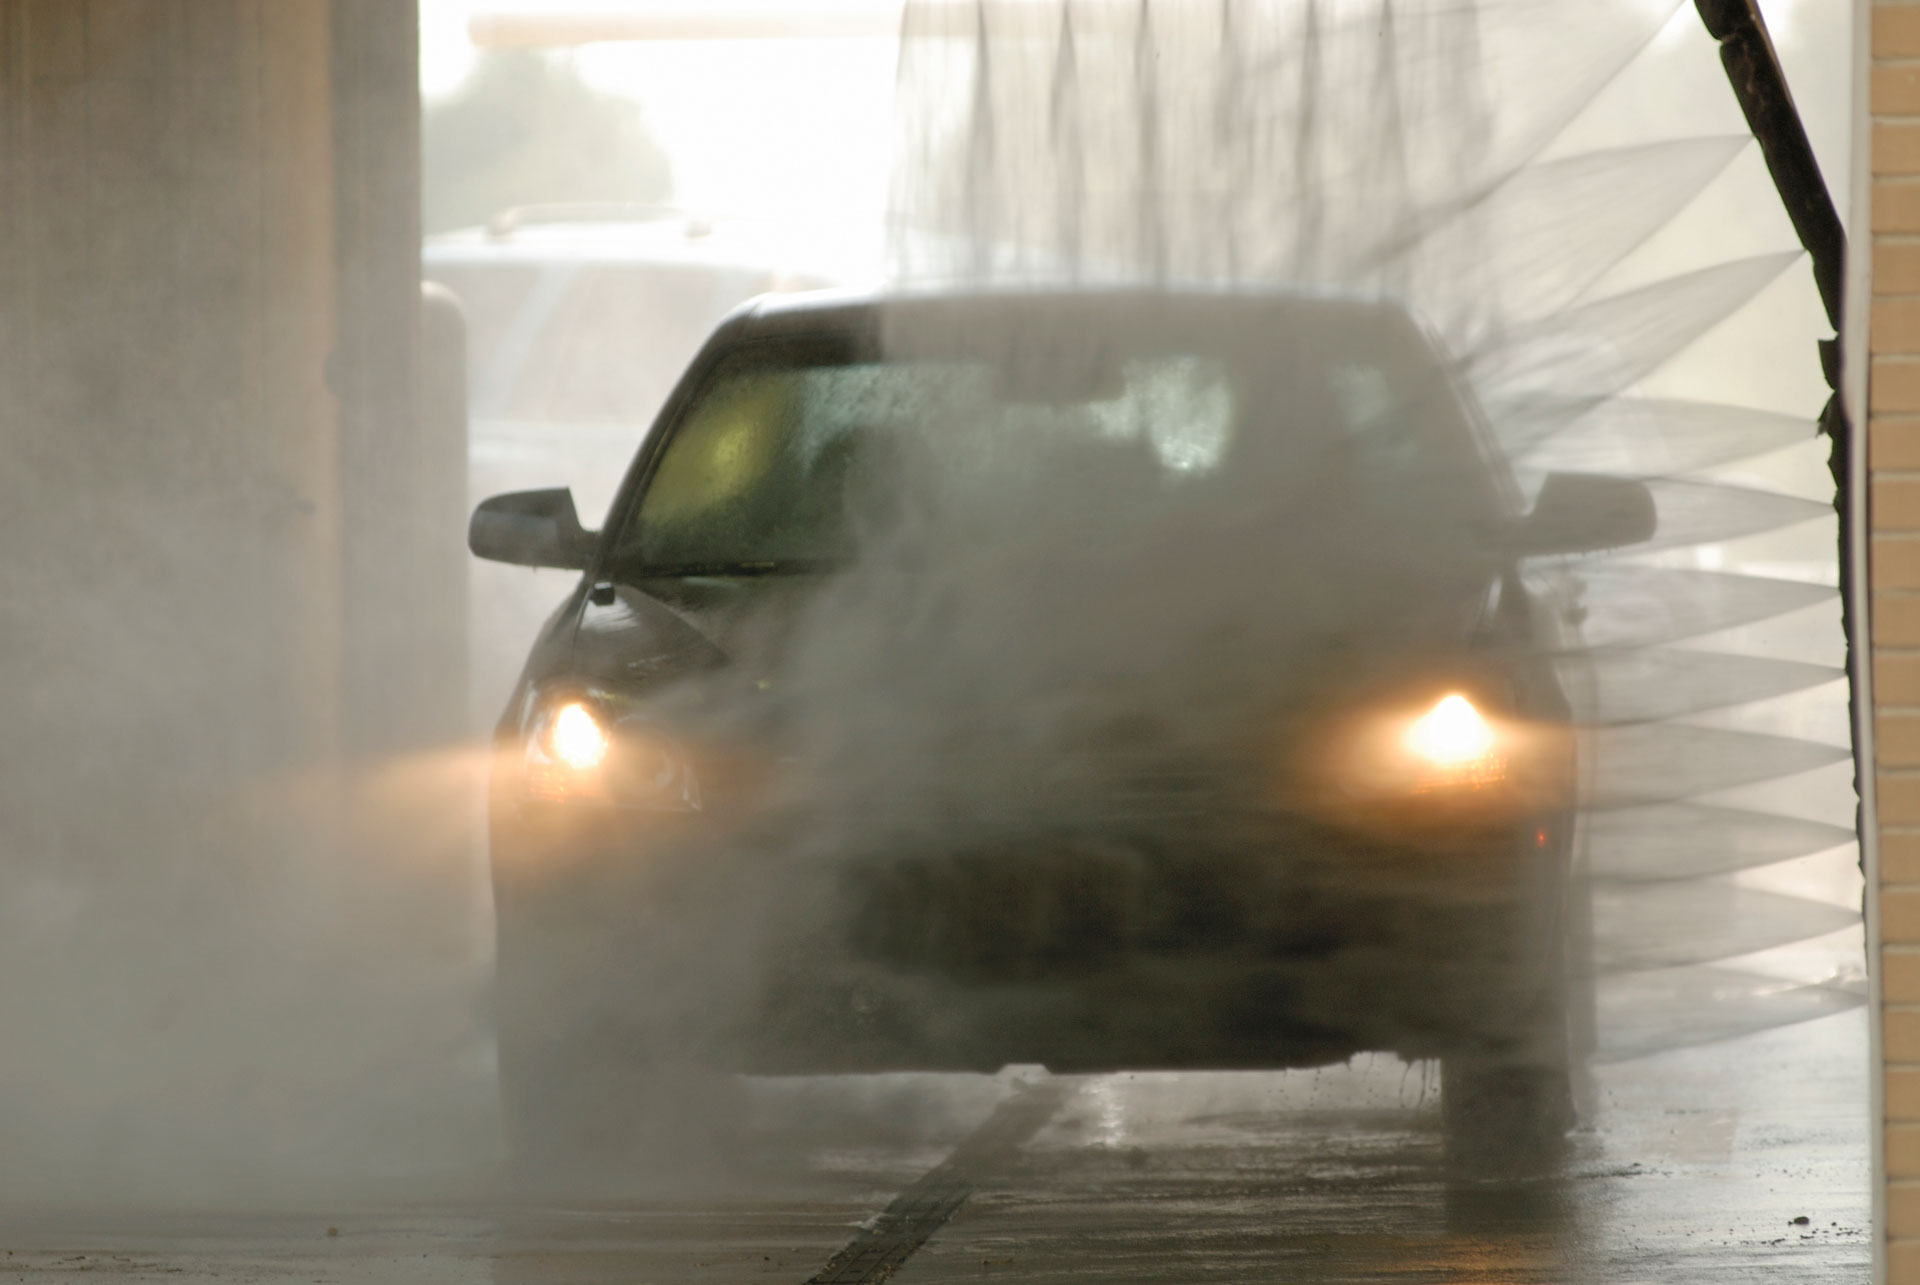 High pressure water jets clean a car in an automatic touchless car wash